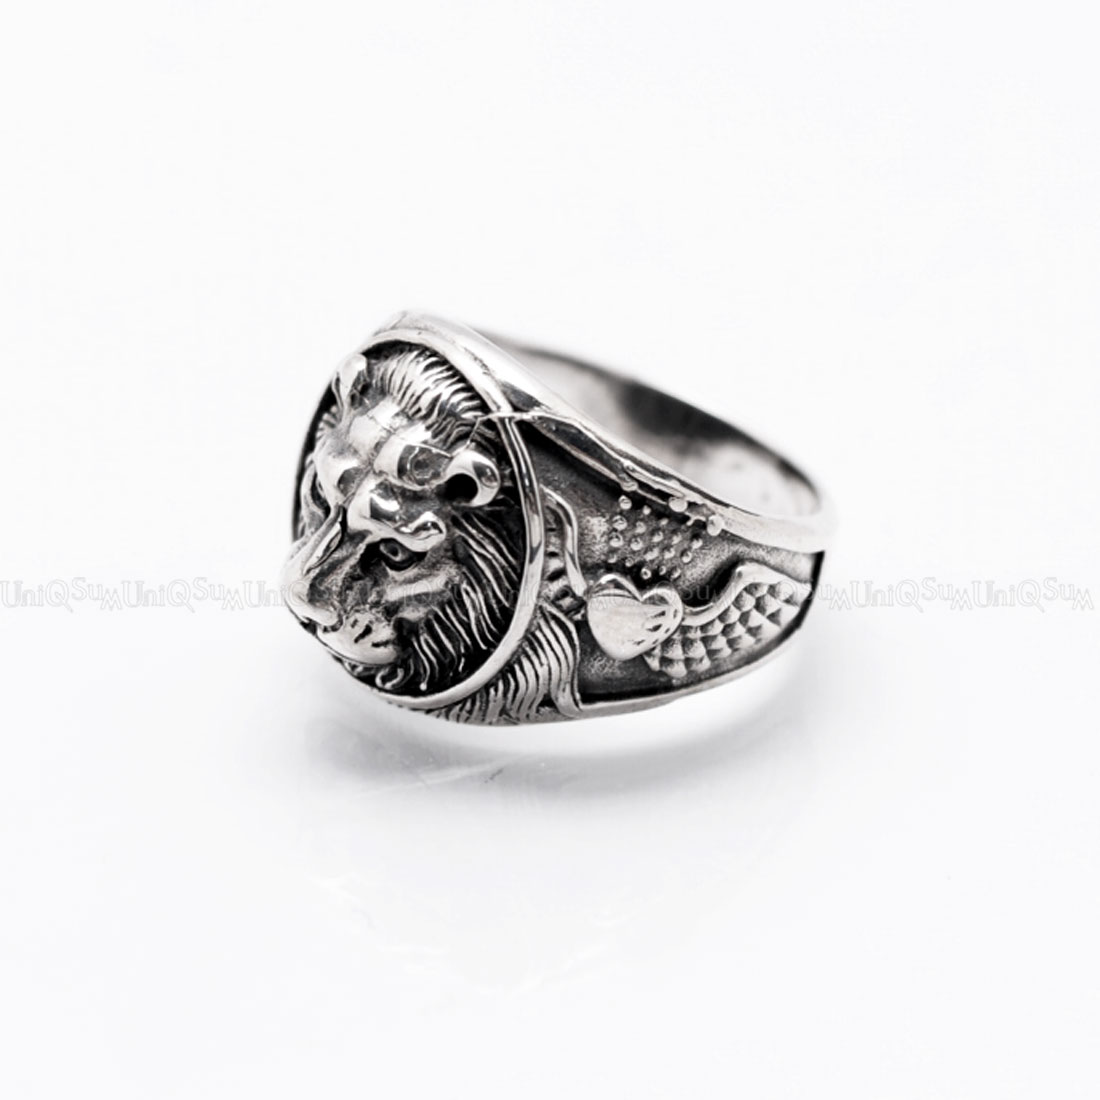 band com ring s rings wedding dragon tungsten queenwish amazon men silvering black carbide celtic women man size dp